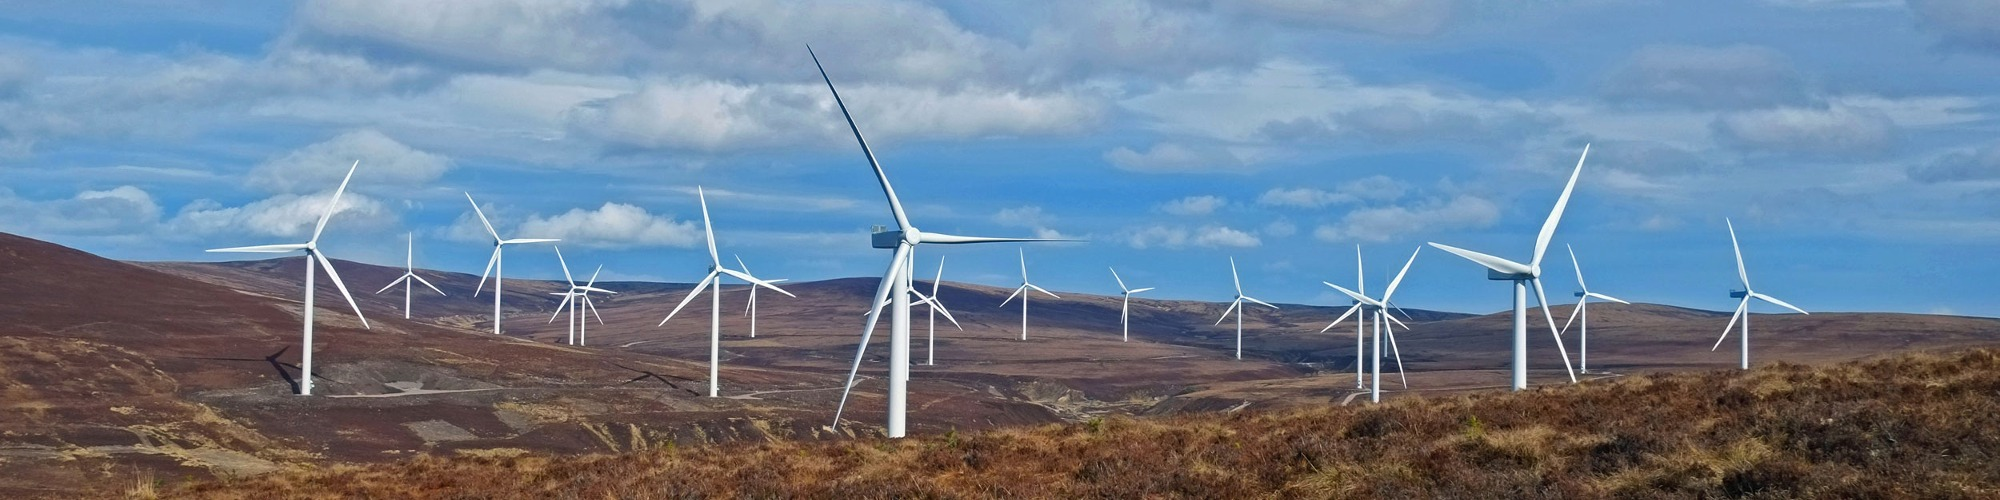 Access platform solutions for wind turbine maintenance in the Scottish Highlands